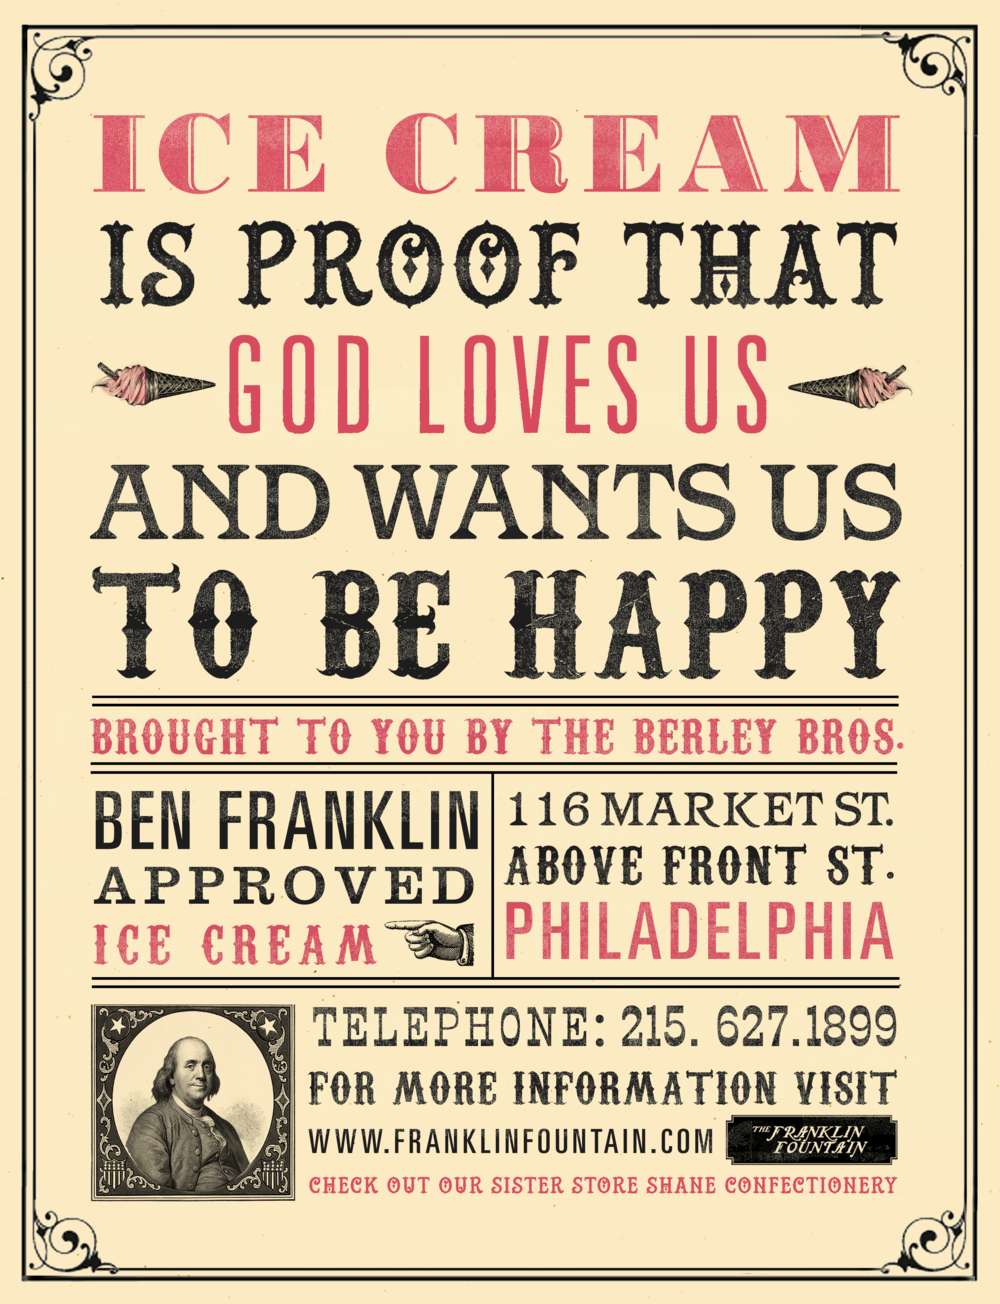 FranklinFountain_print copy.png